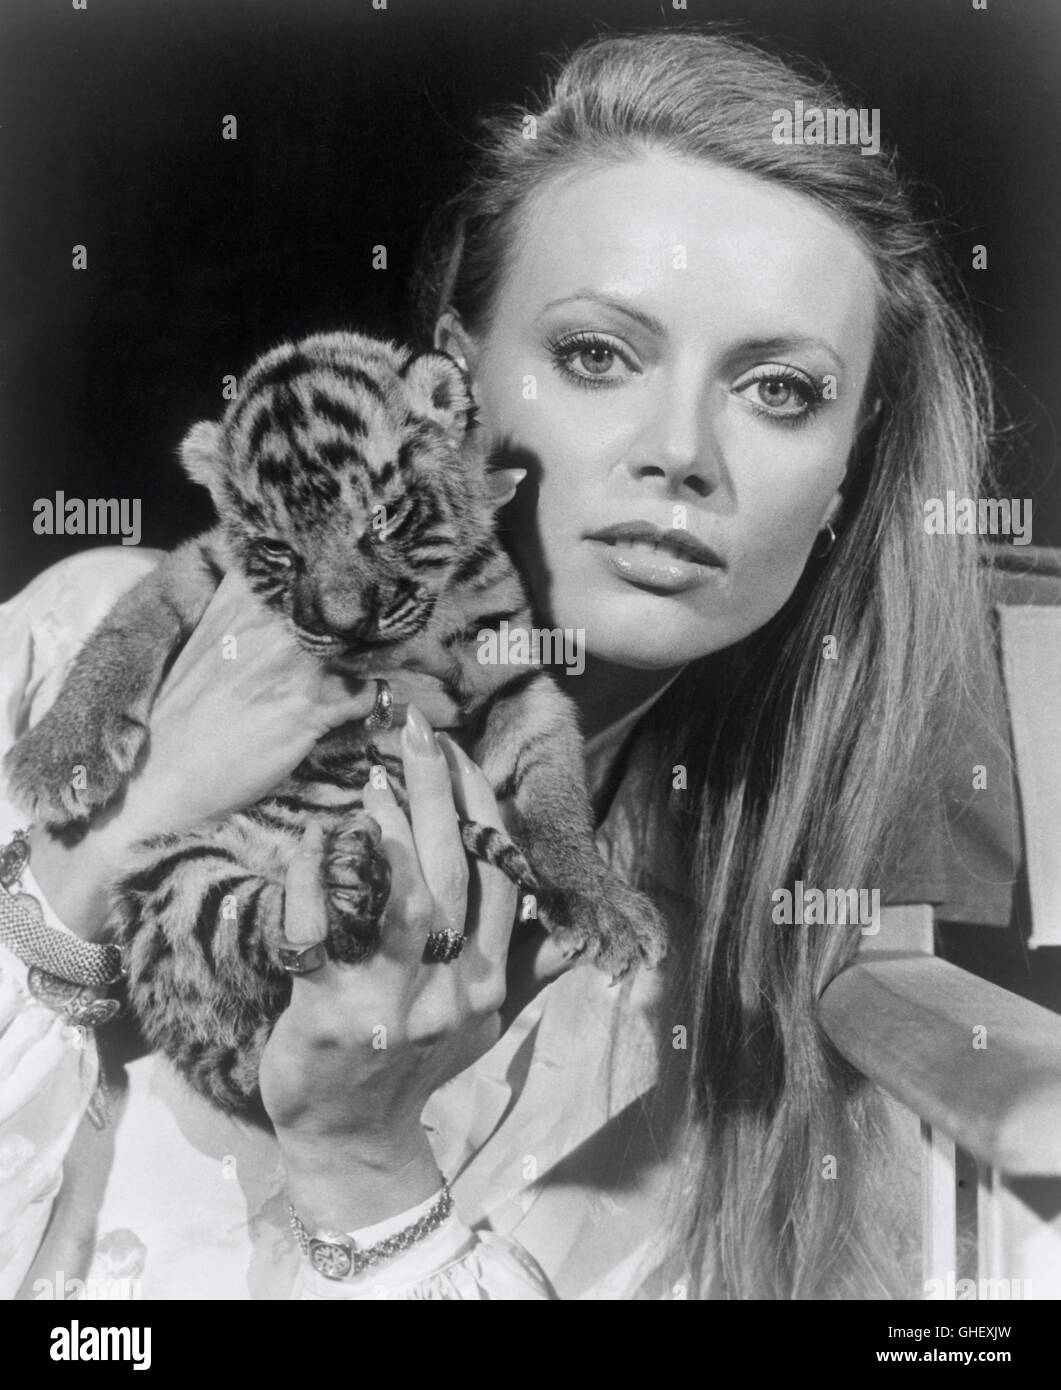 OCTOPUSSY UK/USA 1983 John Glen Magda (KRISTINA WAYBORN) with Tiger Baby, the confidante of an Afghan prince and Octopussy's trusted aide. Regie: John Glen